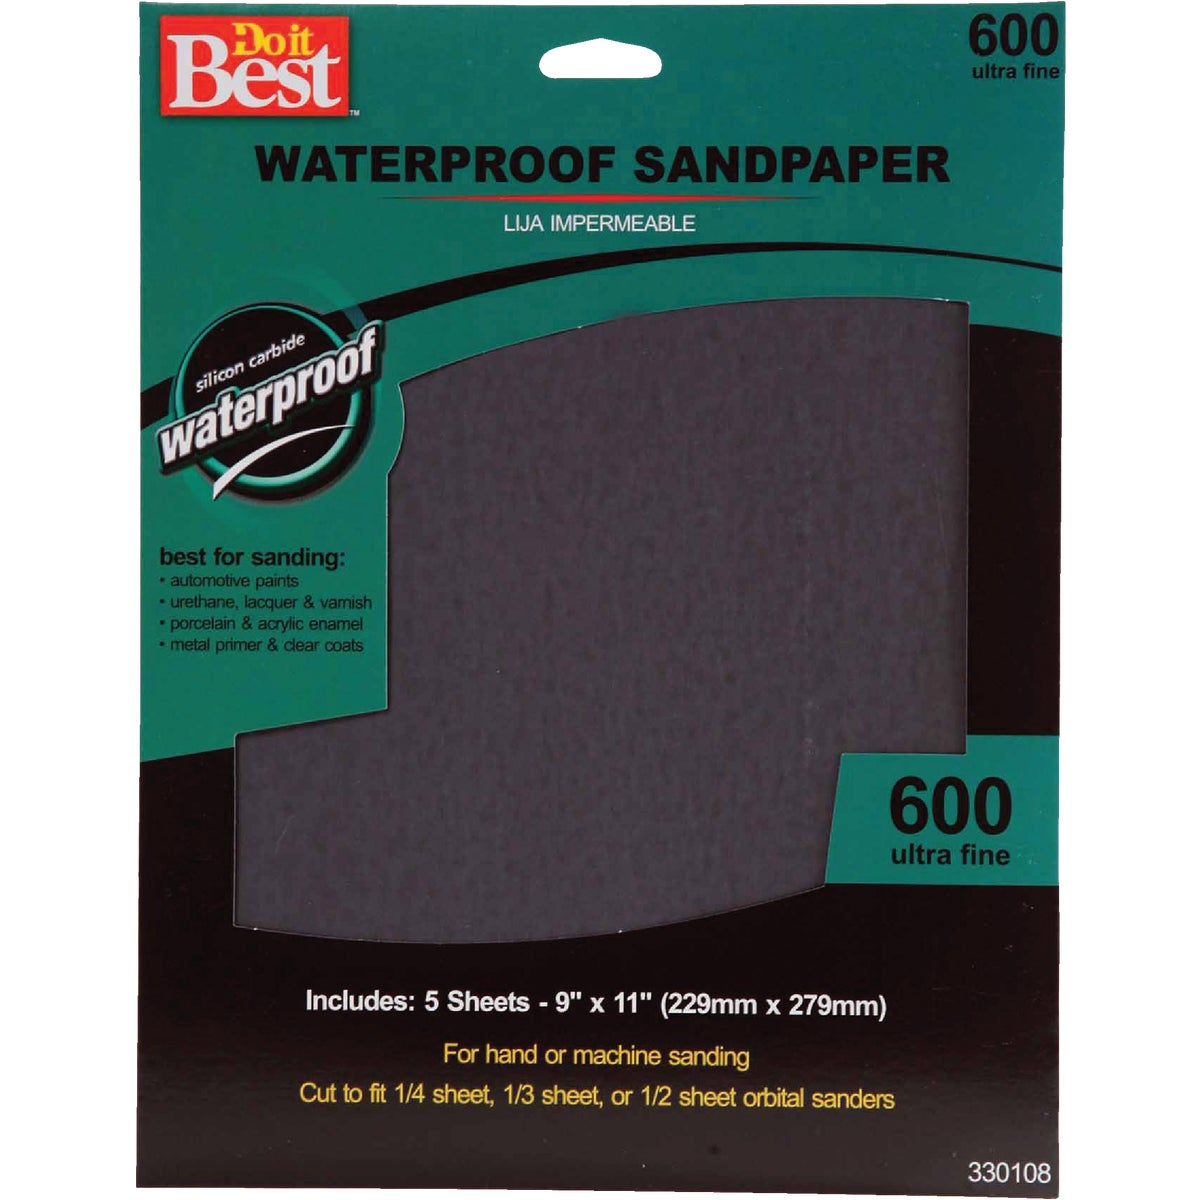 5PK UFINE WET SANDPAPER